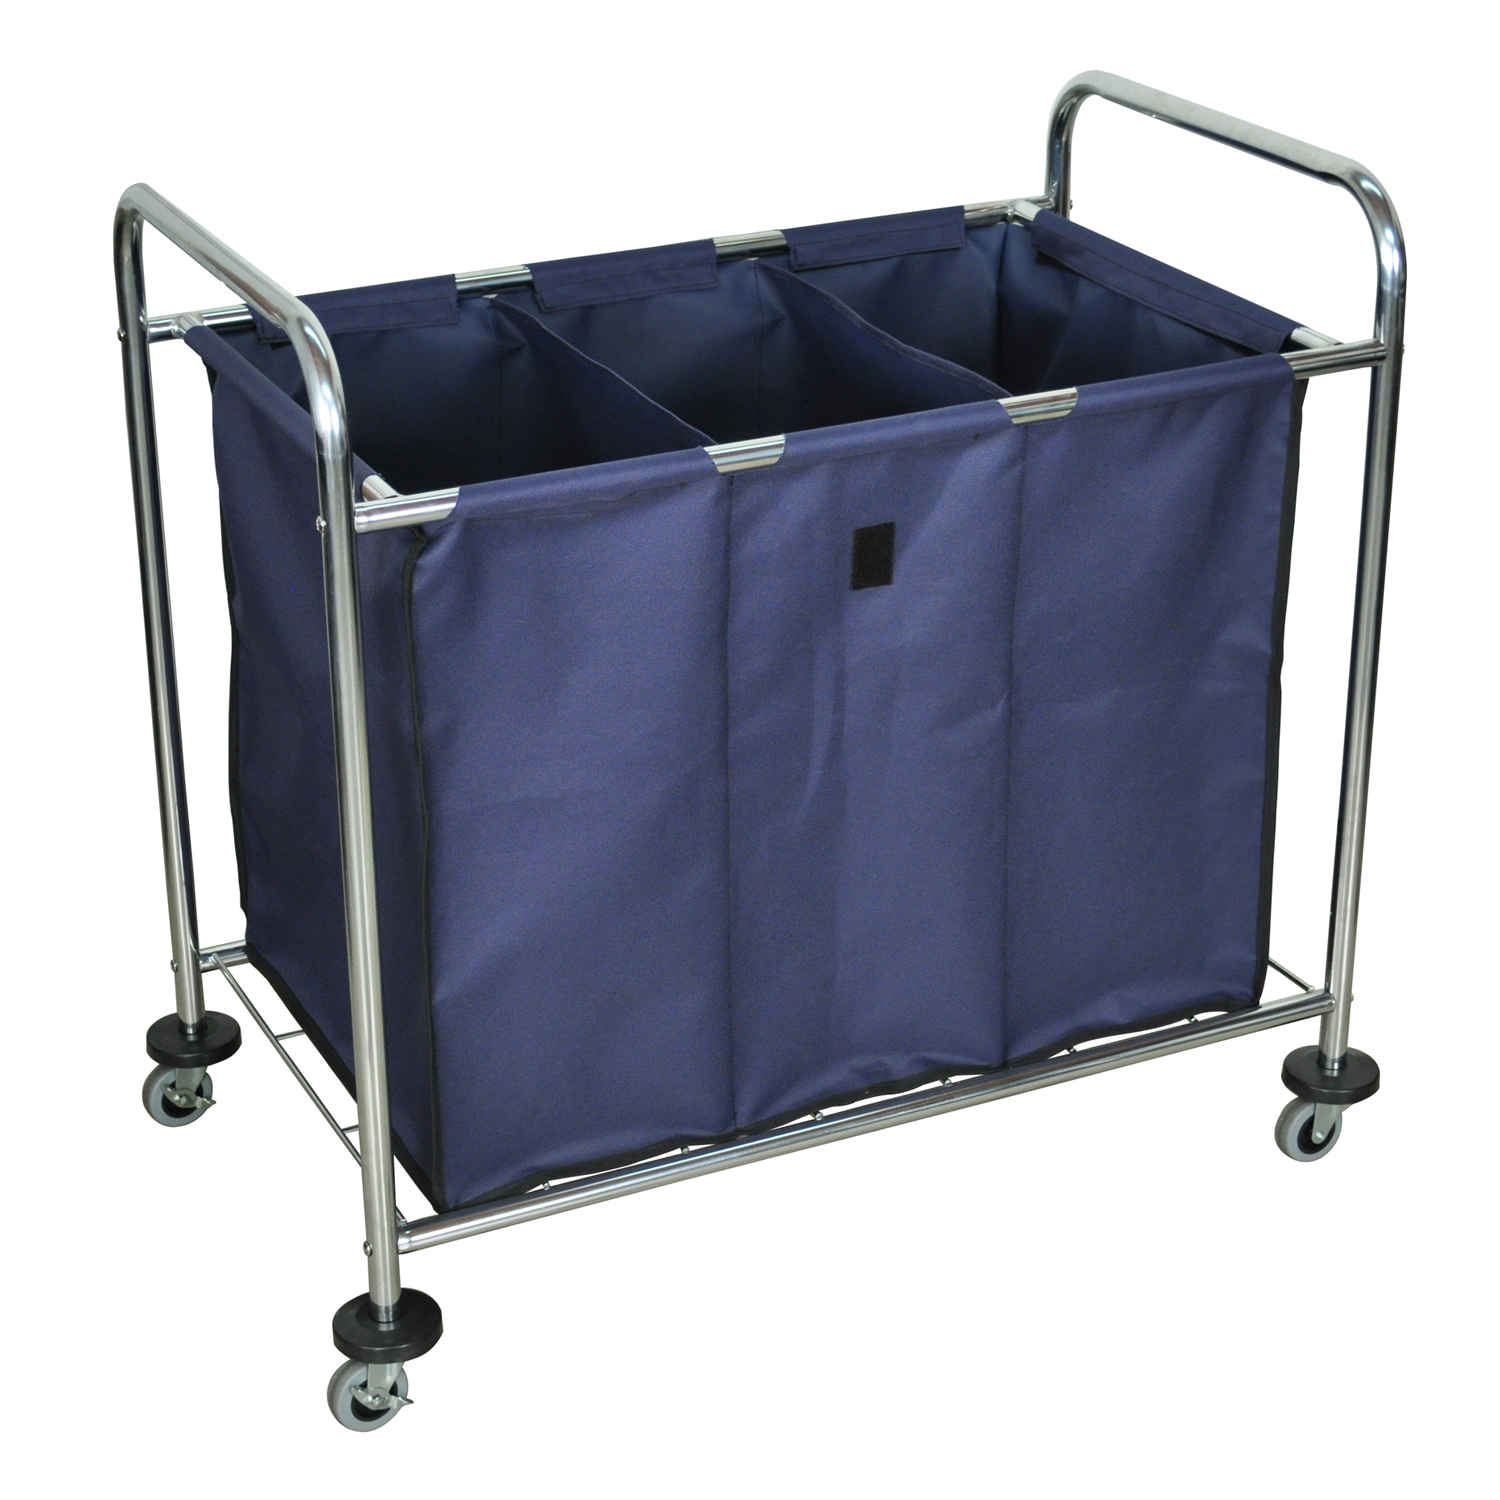 Offex Mobile Heavy Duty Industrial Laundry Sorter Cart With Triple Dividers Navy